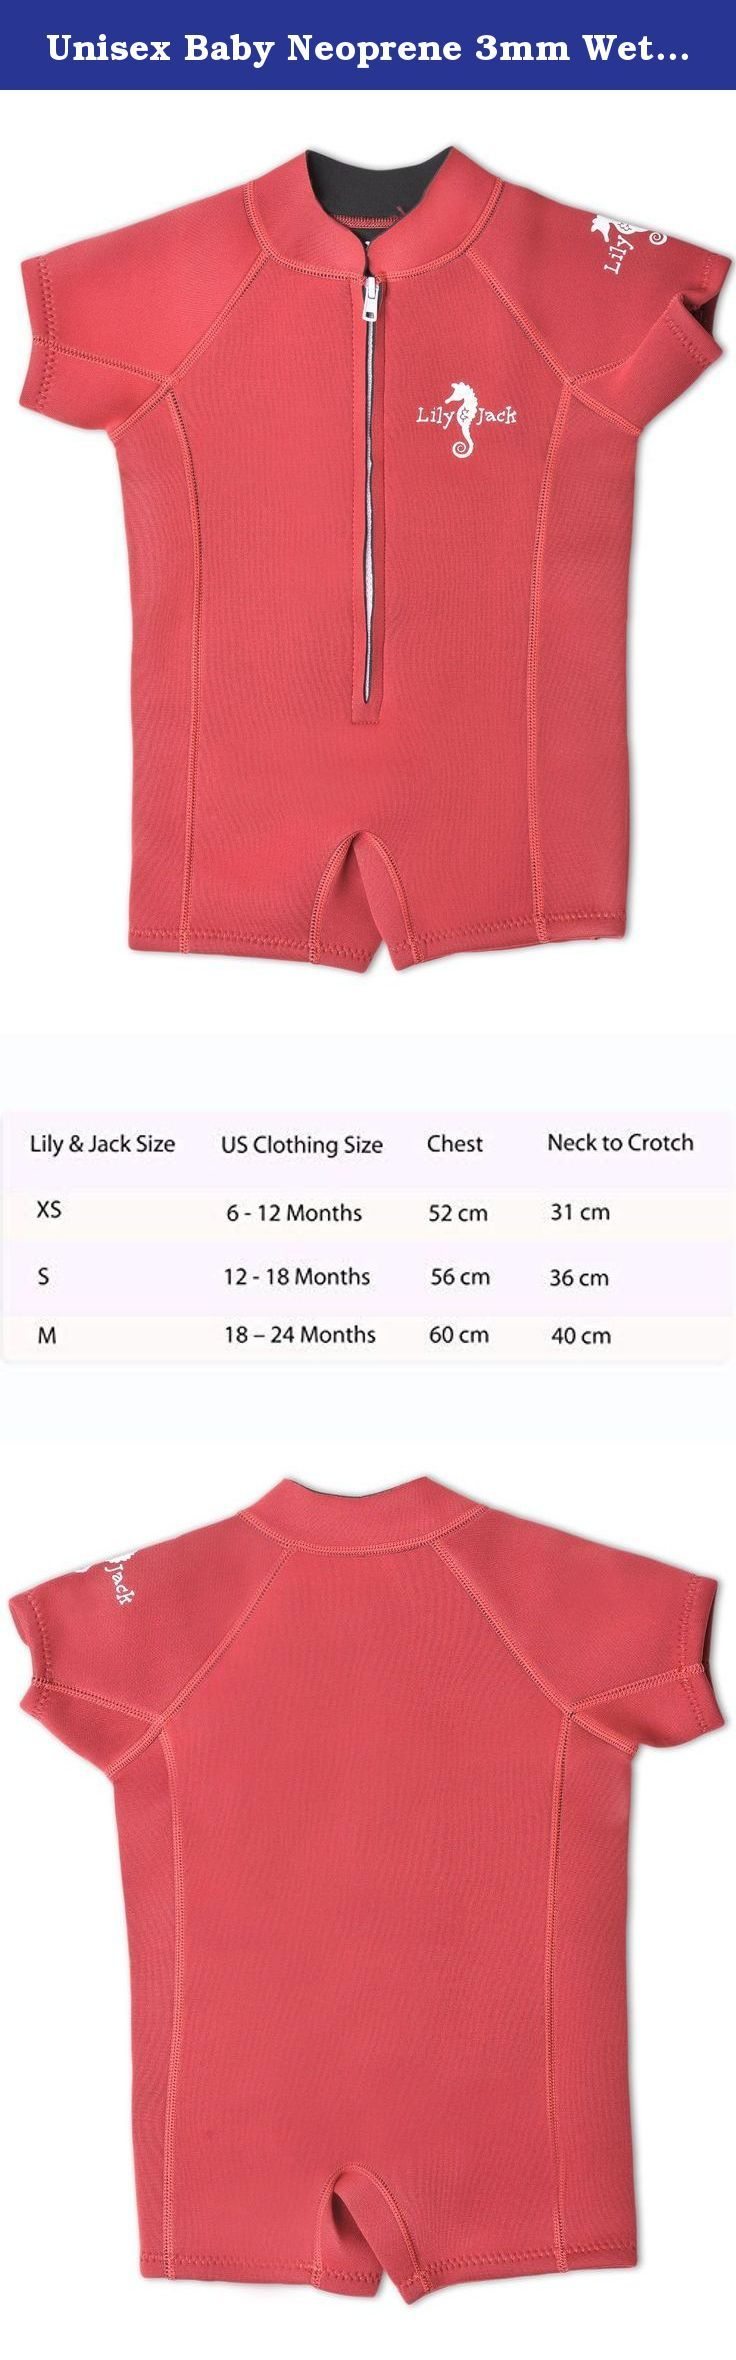 Unisex Baby Neoprene 3mm Wetsuit UV Protected Swimwear for Toddlers (Red M). Hot summer days means time outside by the pool, splashing in sprinklers, or day trips to the beach. This wetsuit is designed to keep your child warm and comfortable while still being protective of vulnerable skin that might get burned in the sun. The 80% Neoprene/ 20% Lycra material is stretchy which makes it easy to slip on and off squirming babies. The durable stitching means you don't need to worry about wear…